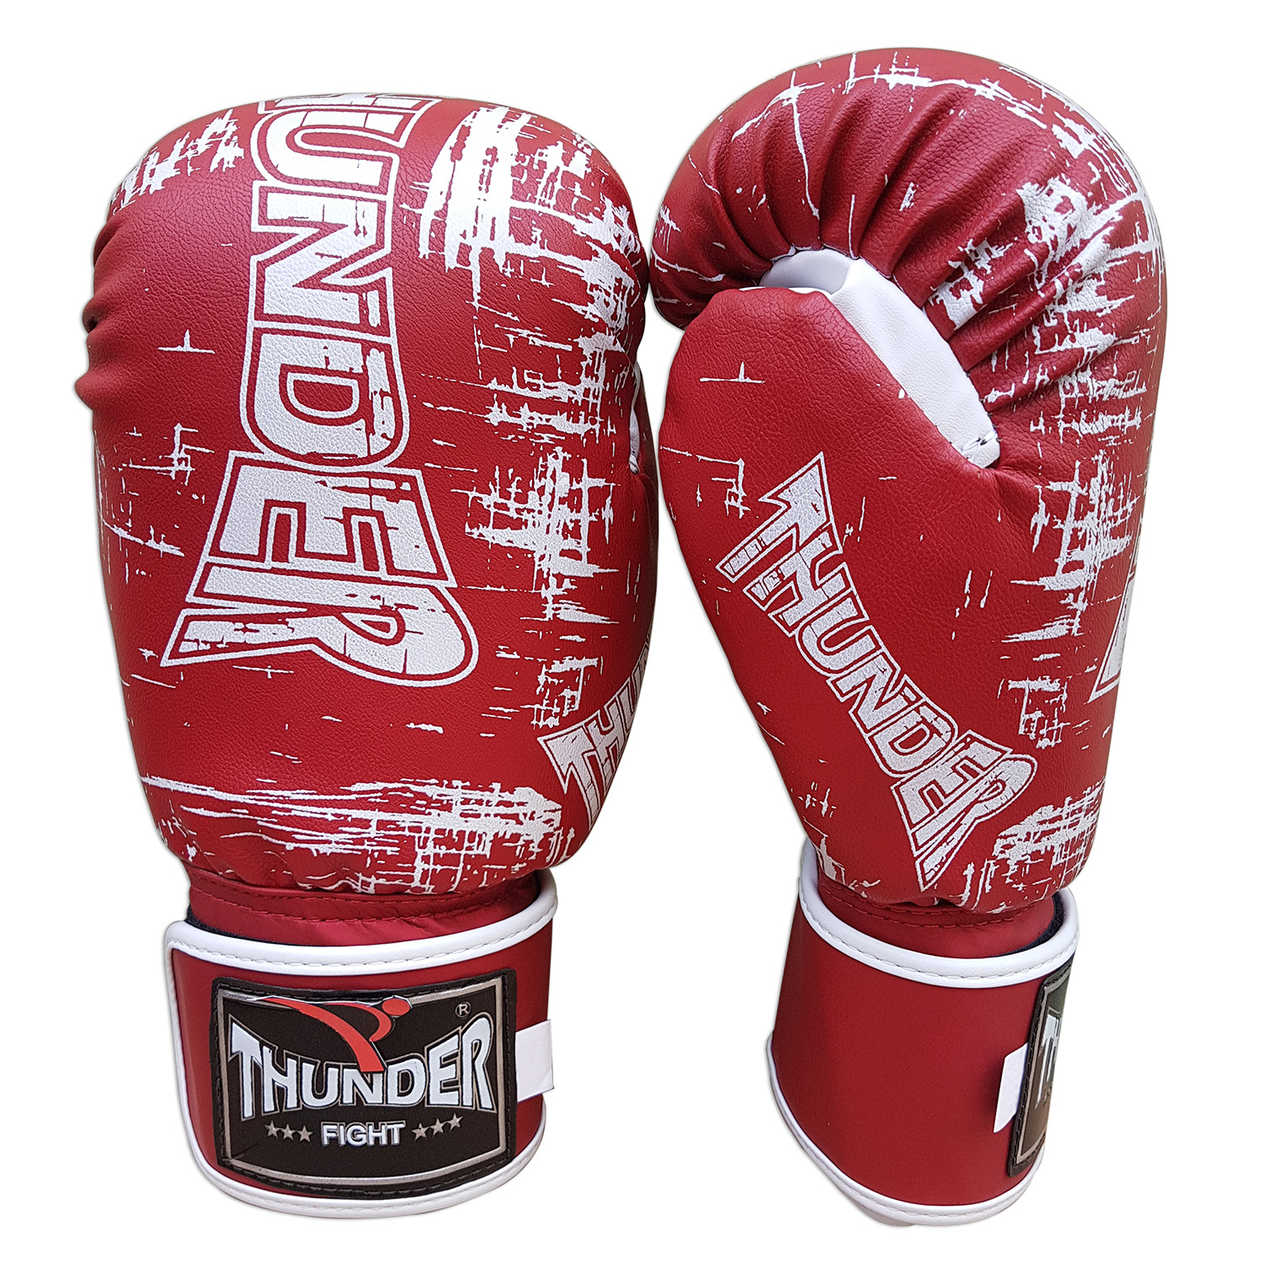 Kit de Muay Thai / Kickboxing 14oz - Vermelho - Thunder Fight  - PRALUTA SHOP